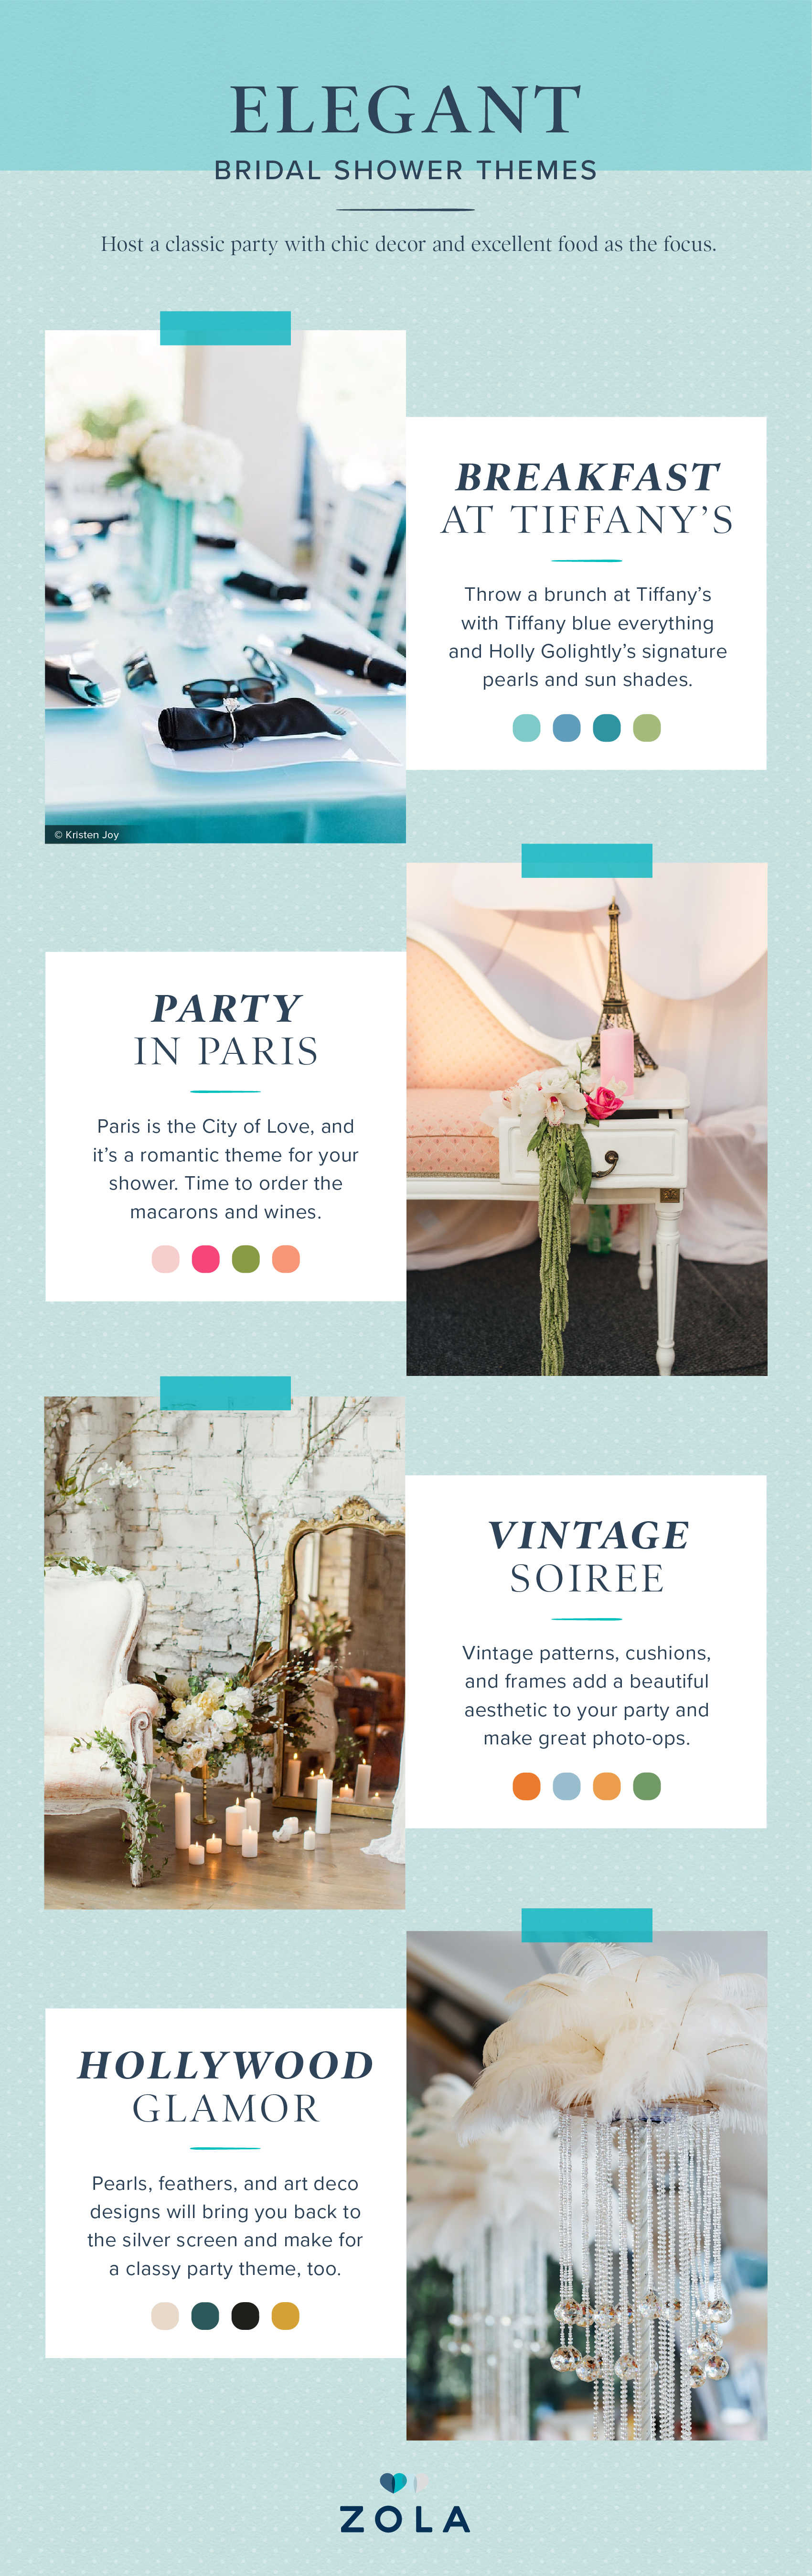 40 Bridal Shower Themes for Modern Couples | Zola Expert Wedding Advice